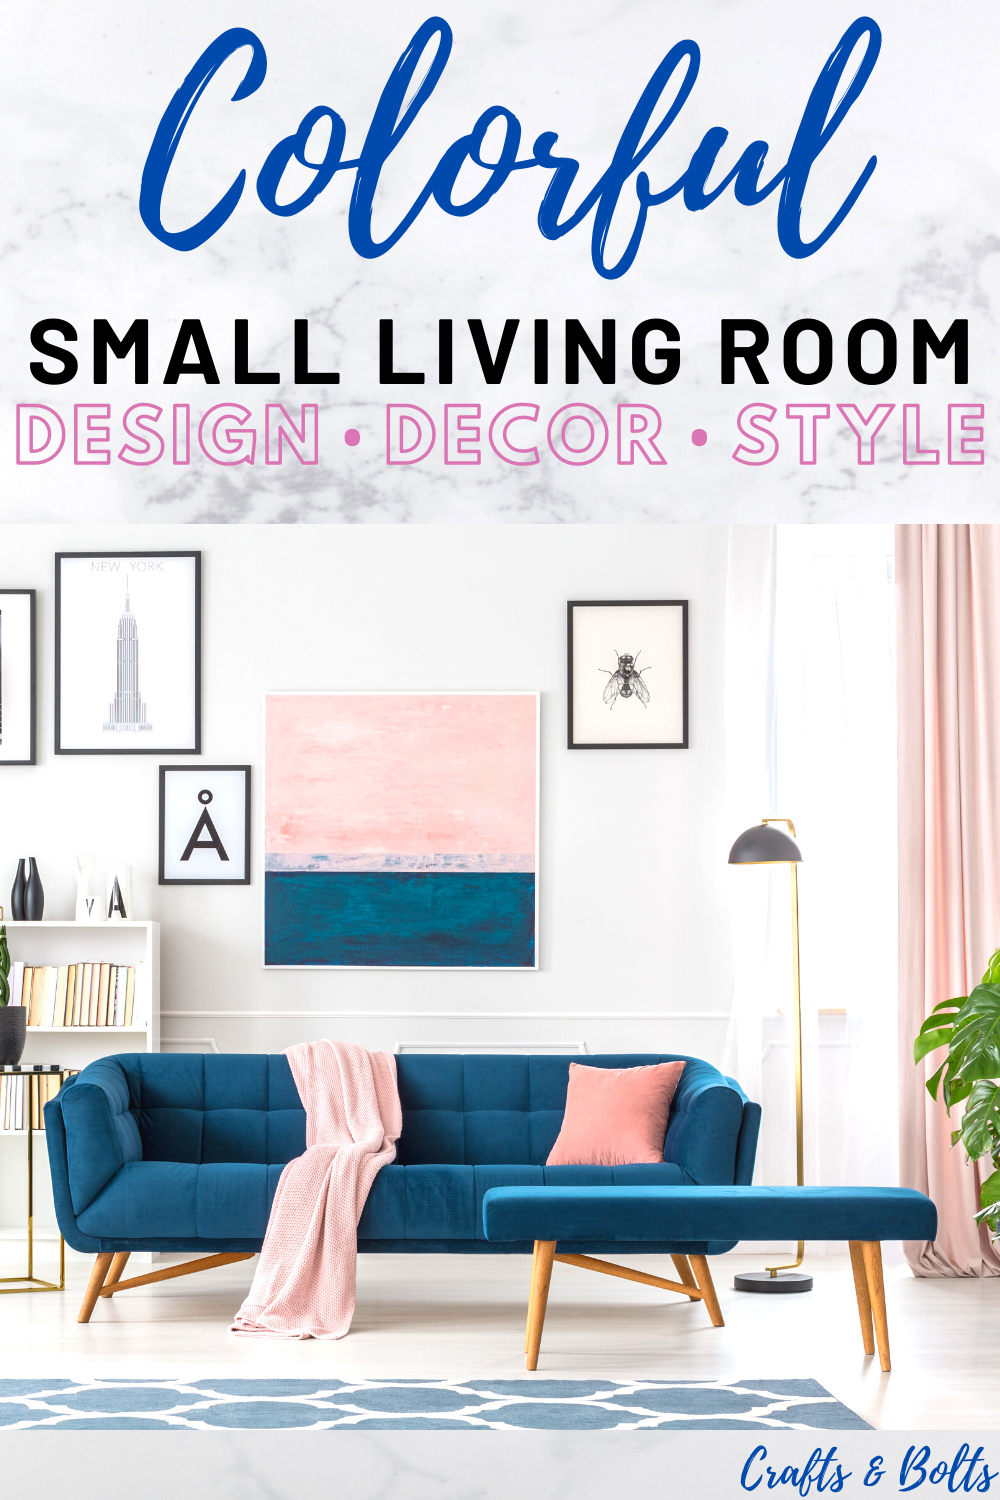 You've come to the right place for living room design secrets